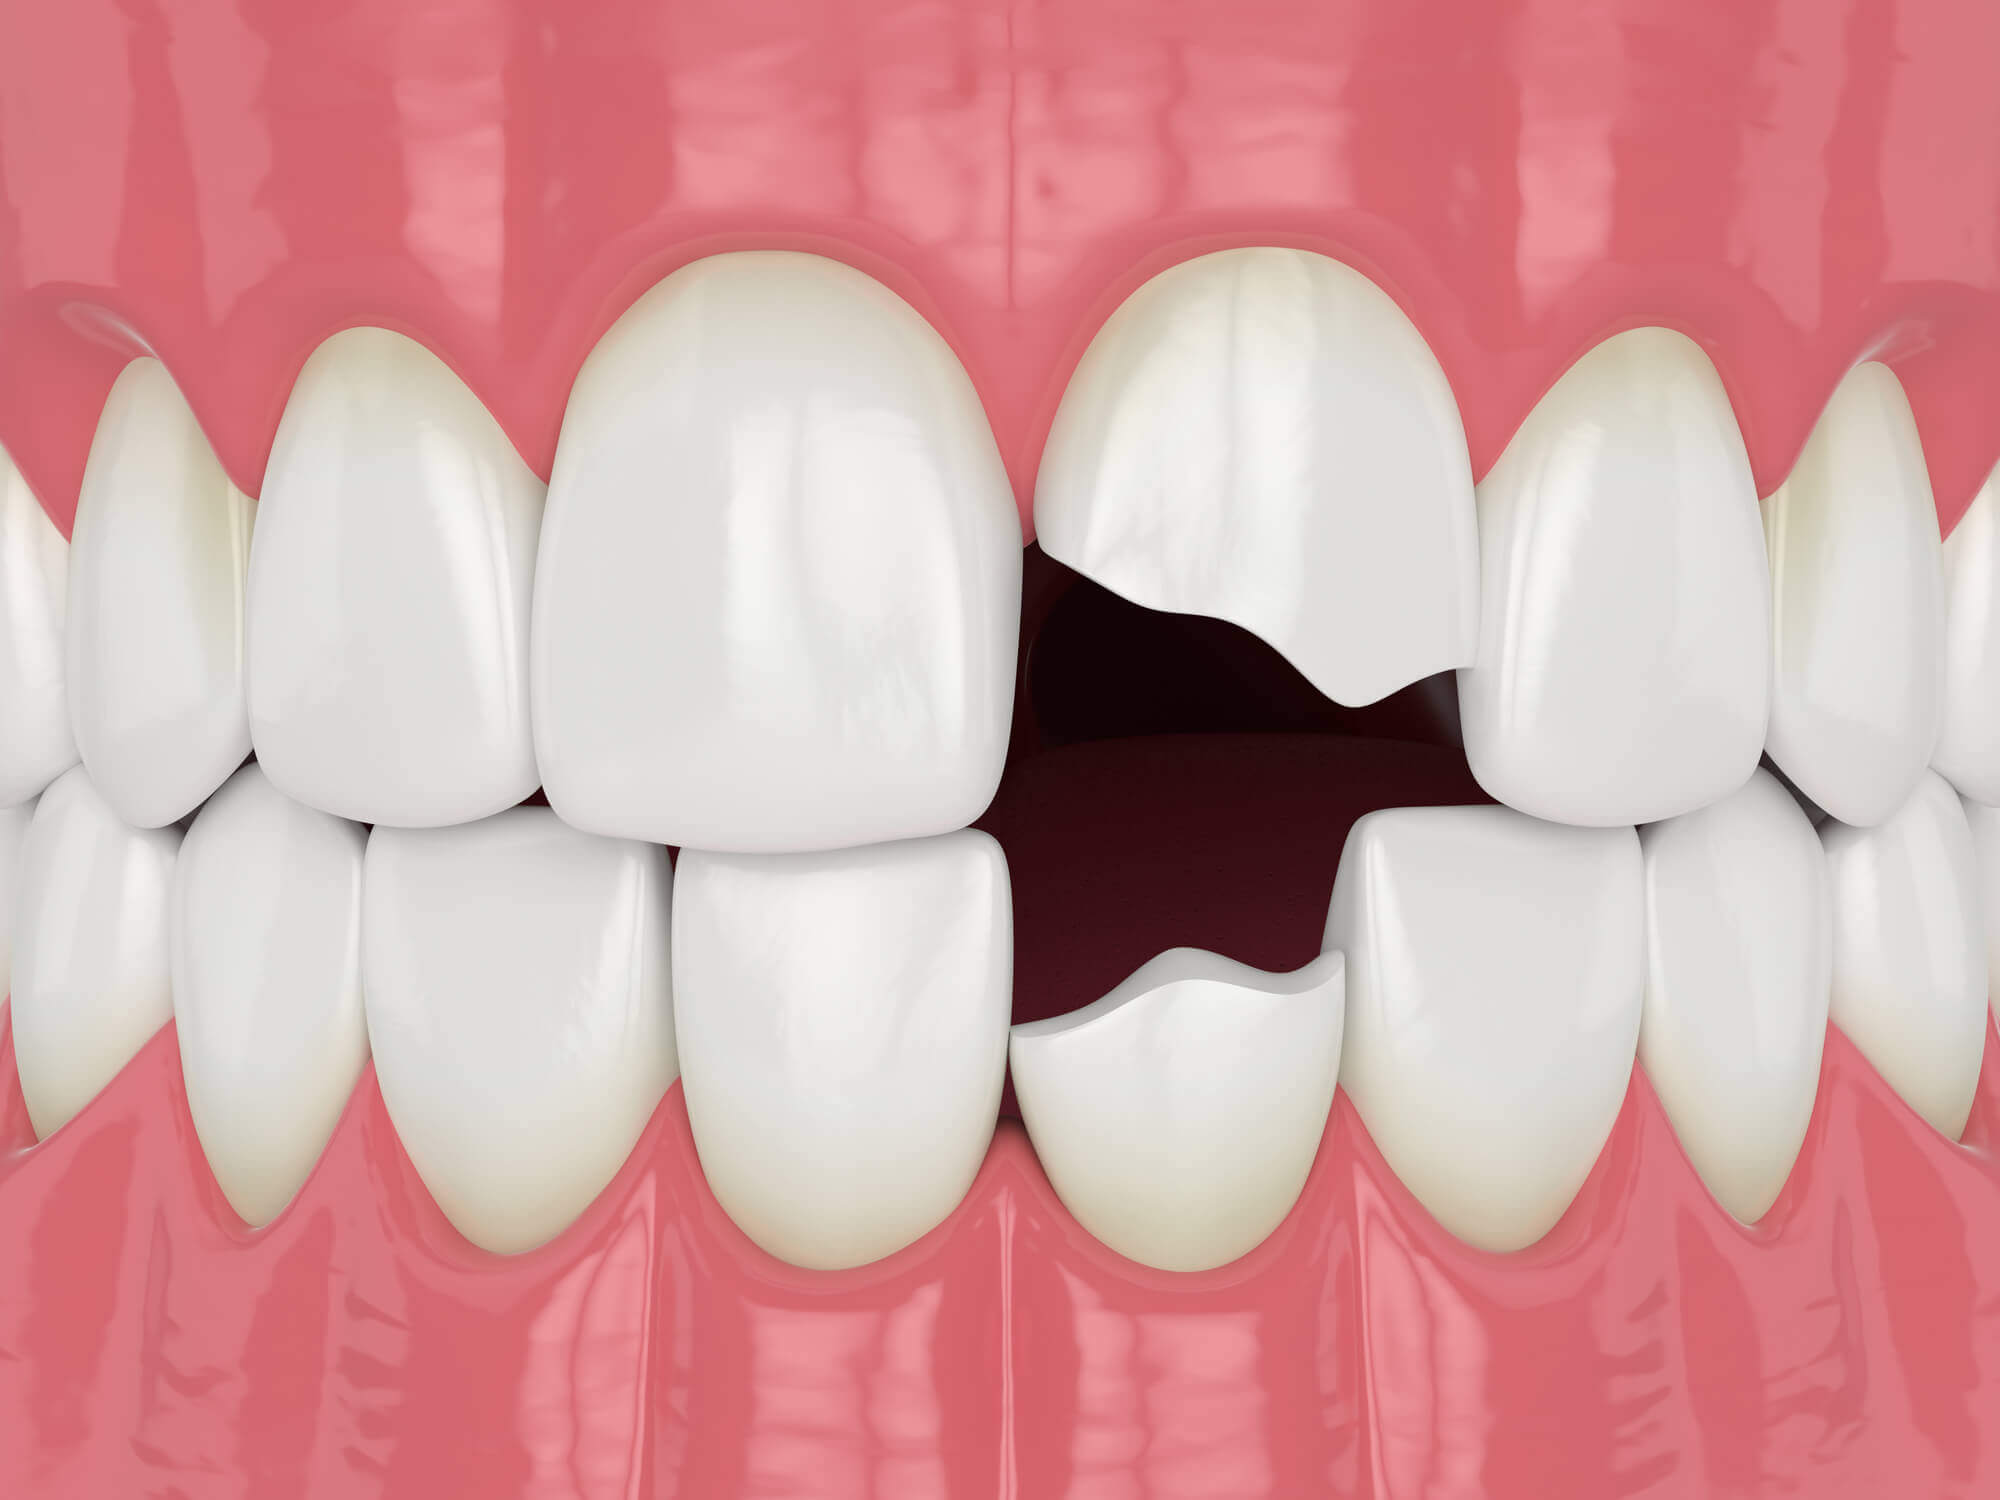 Who is the best Aventura Dentist?